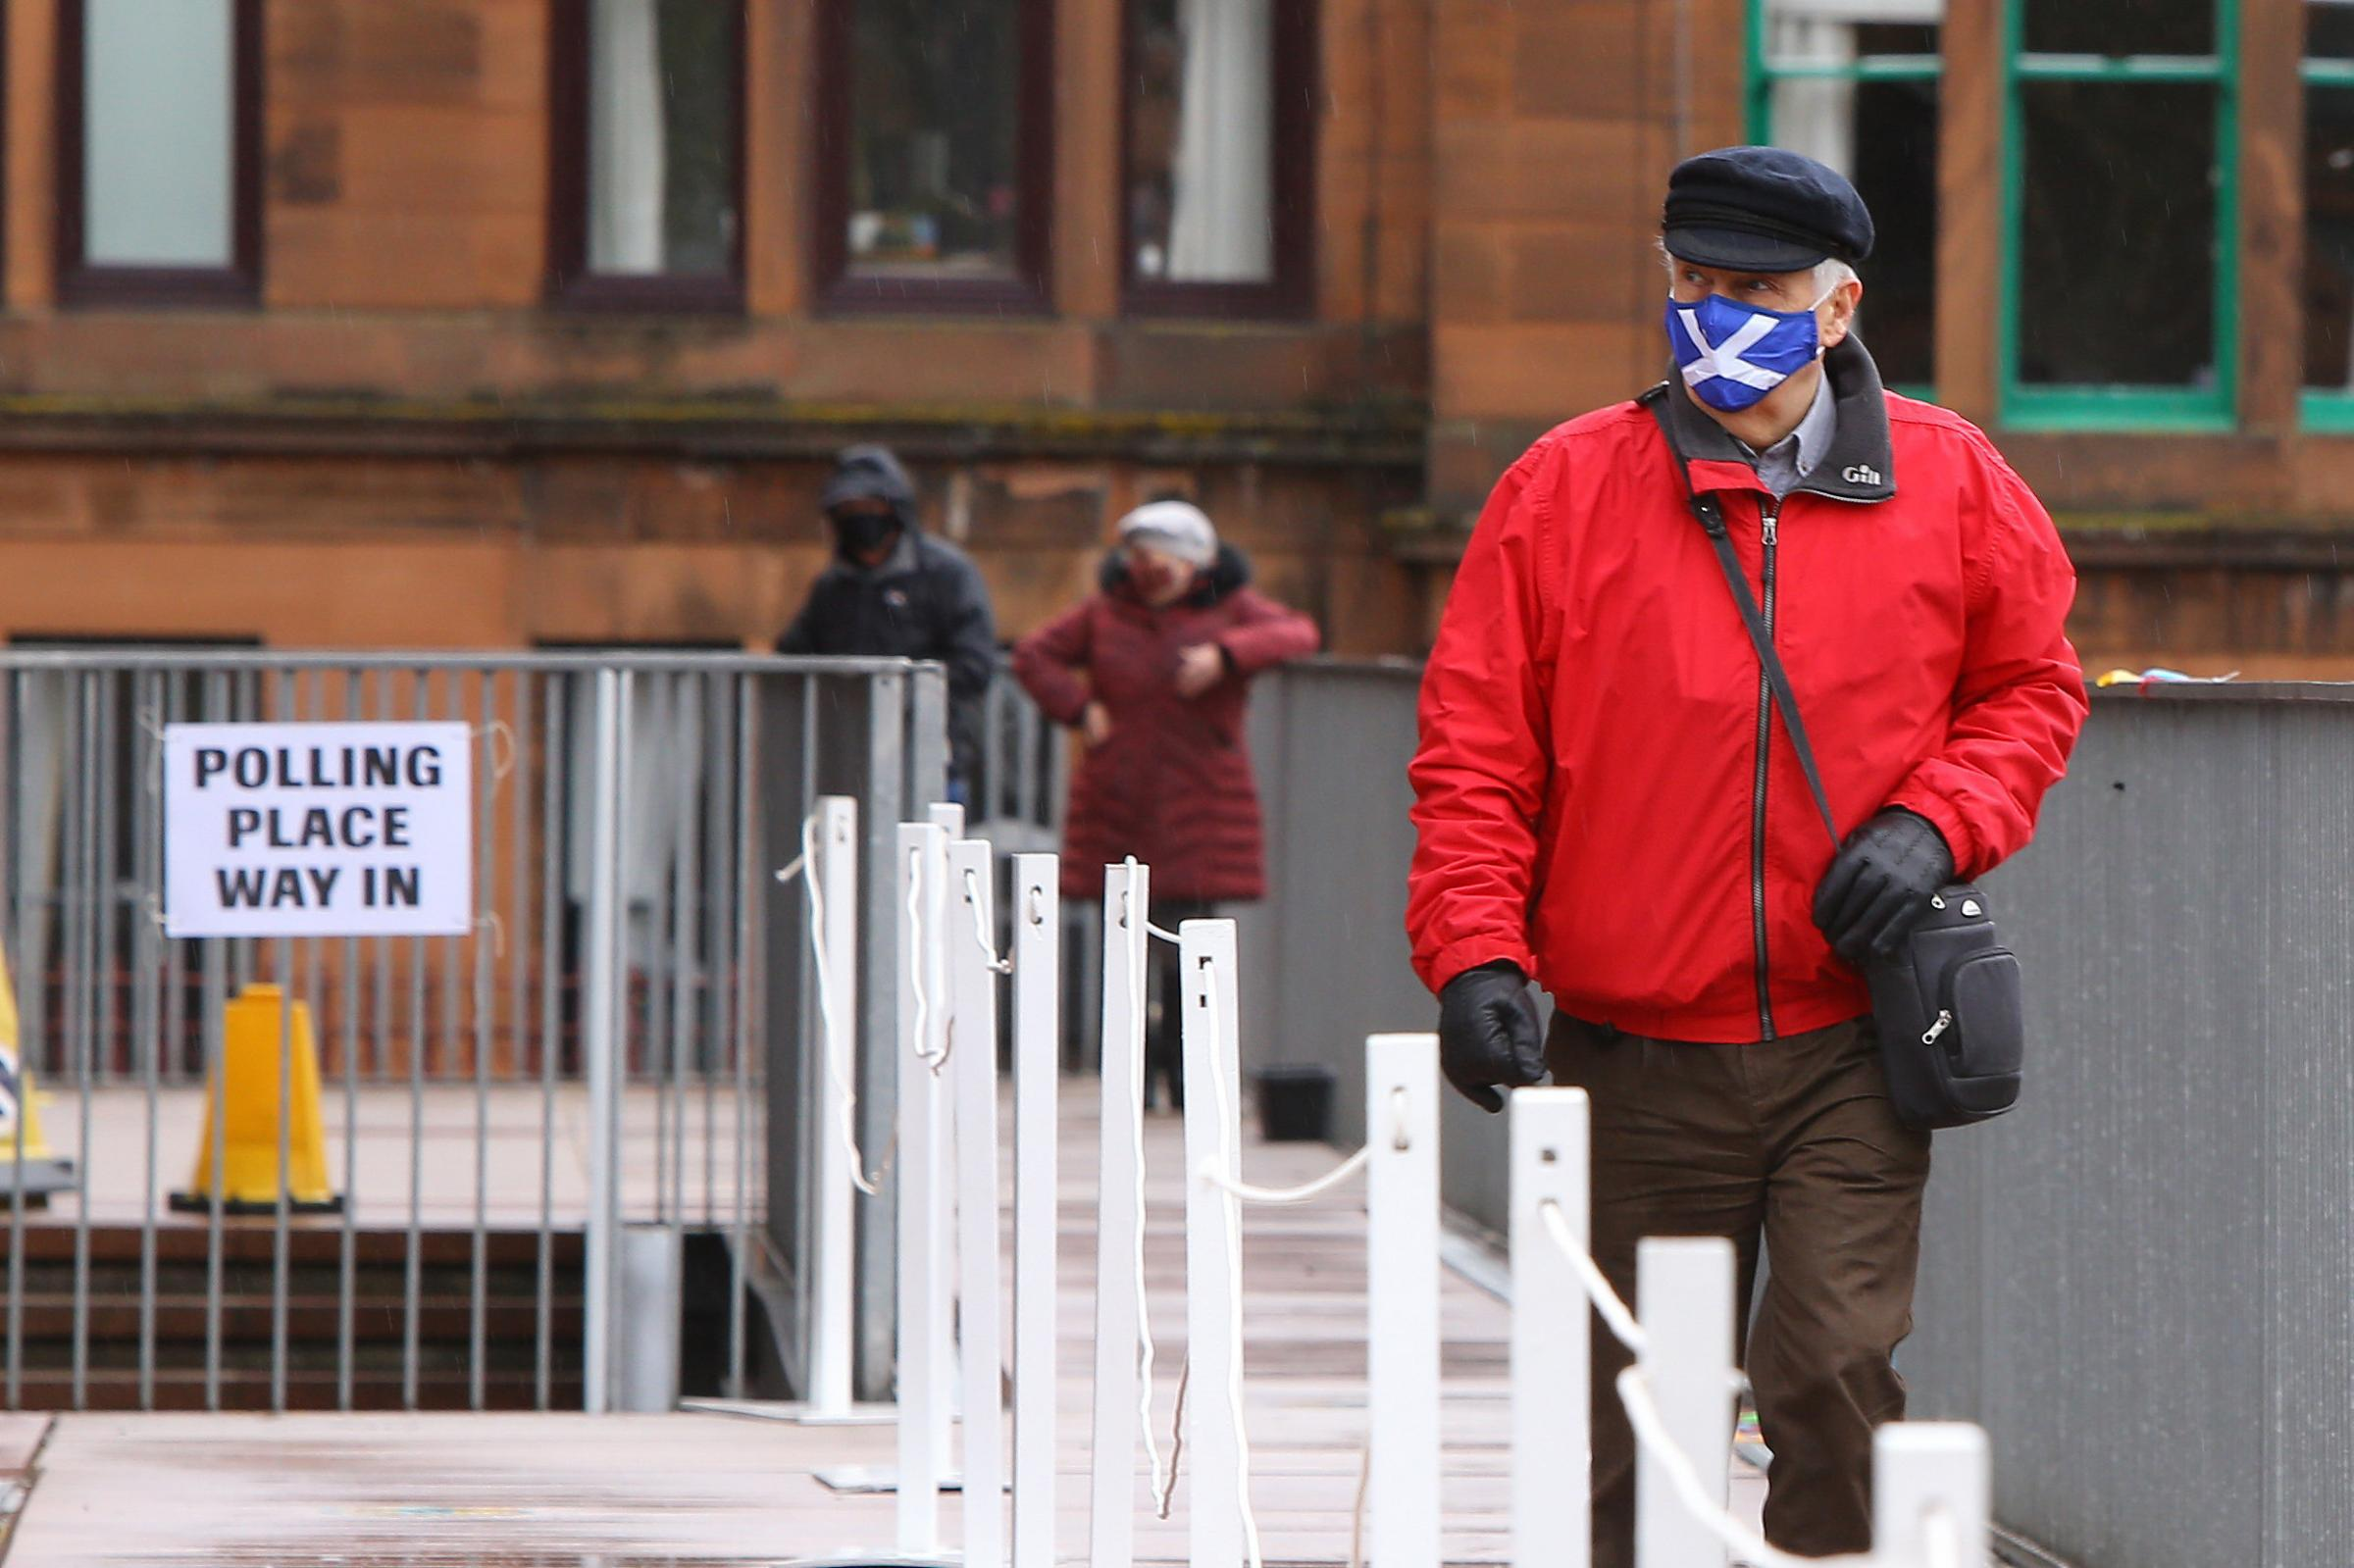 These are the reasons for pursuing Scottish independence now, despite Covid